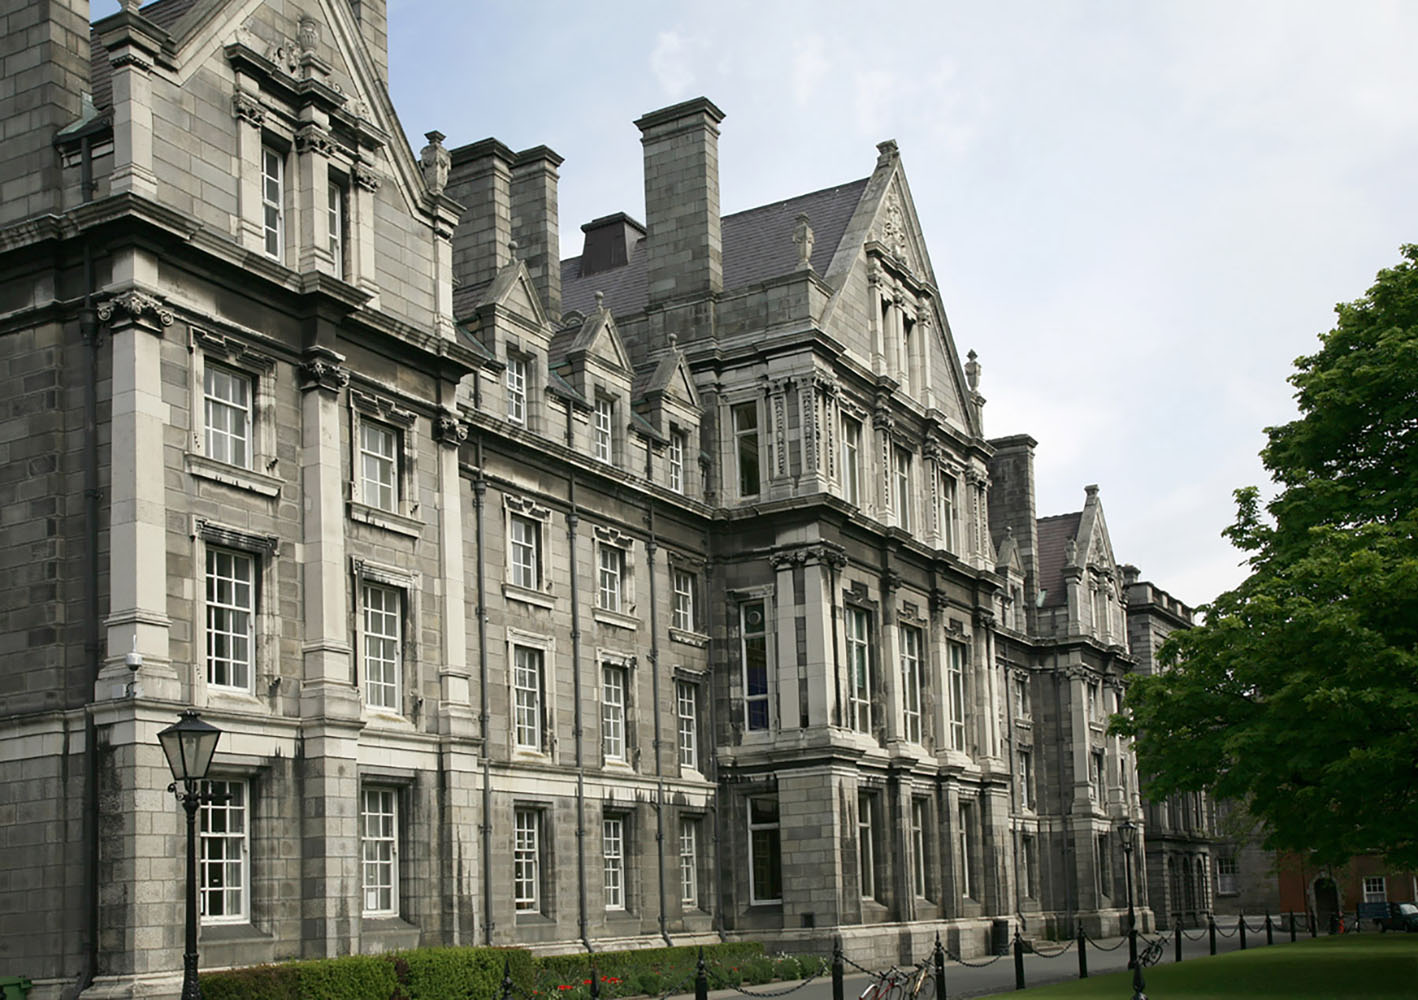 Trinity College campus in Dublin is a beautiful place to explore.